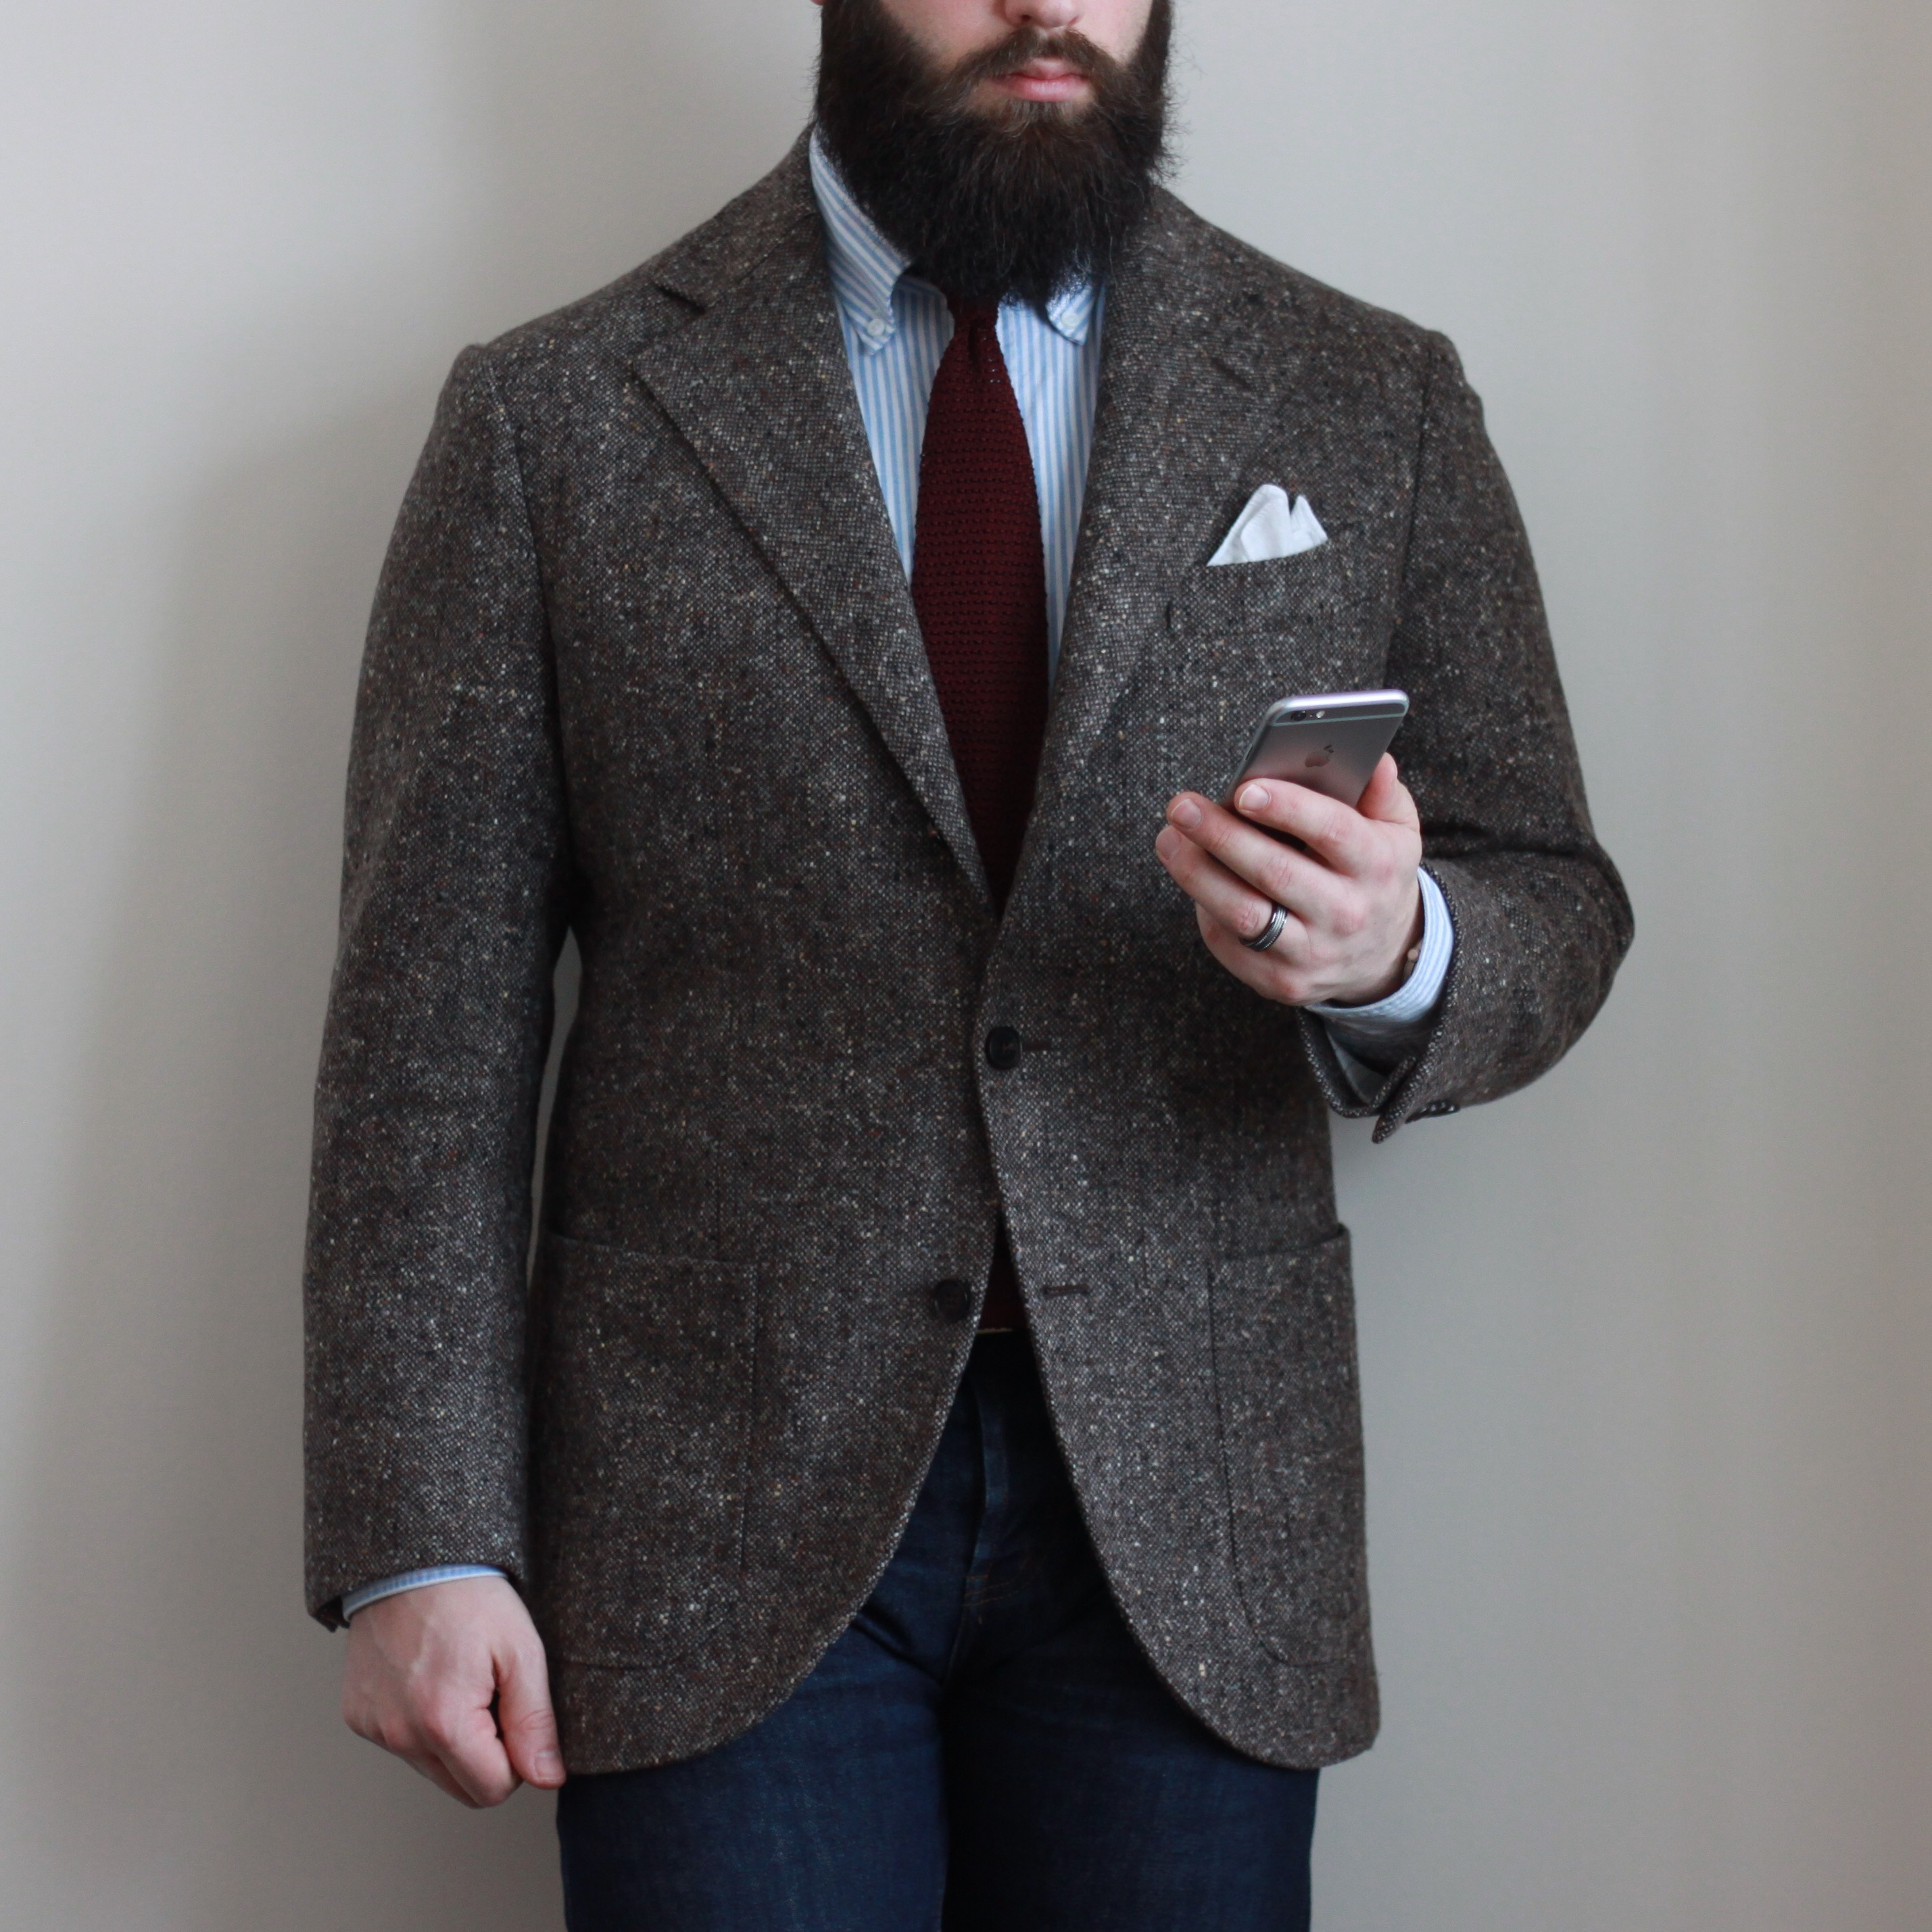 tweed, denim, knit tie, what i wore, sport coat, odd jacket, instagram pose, photography